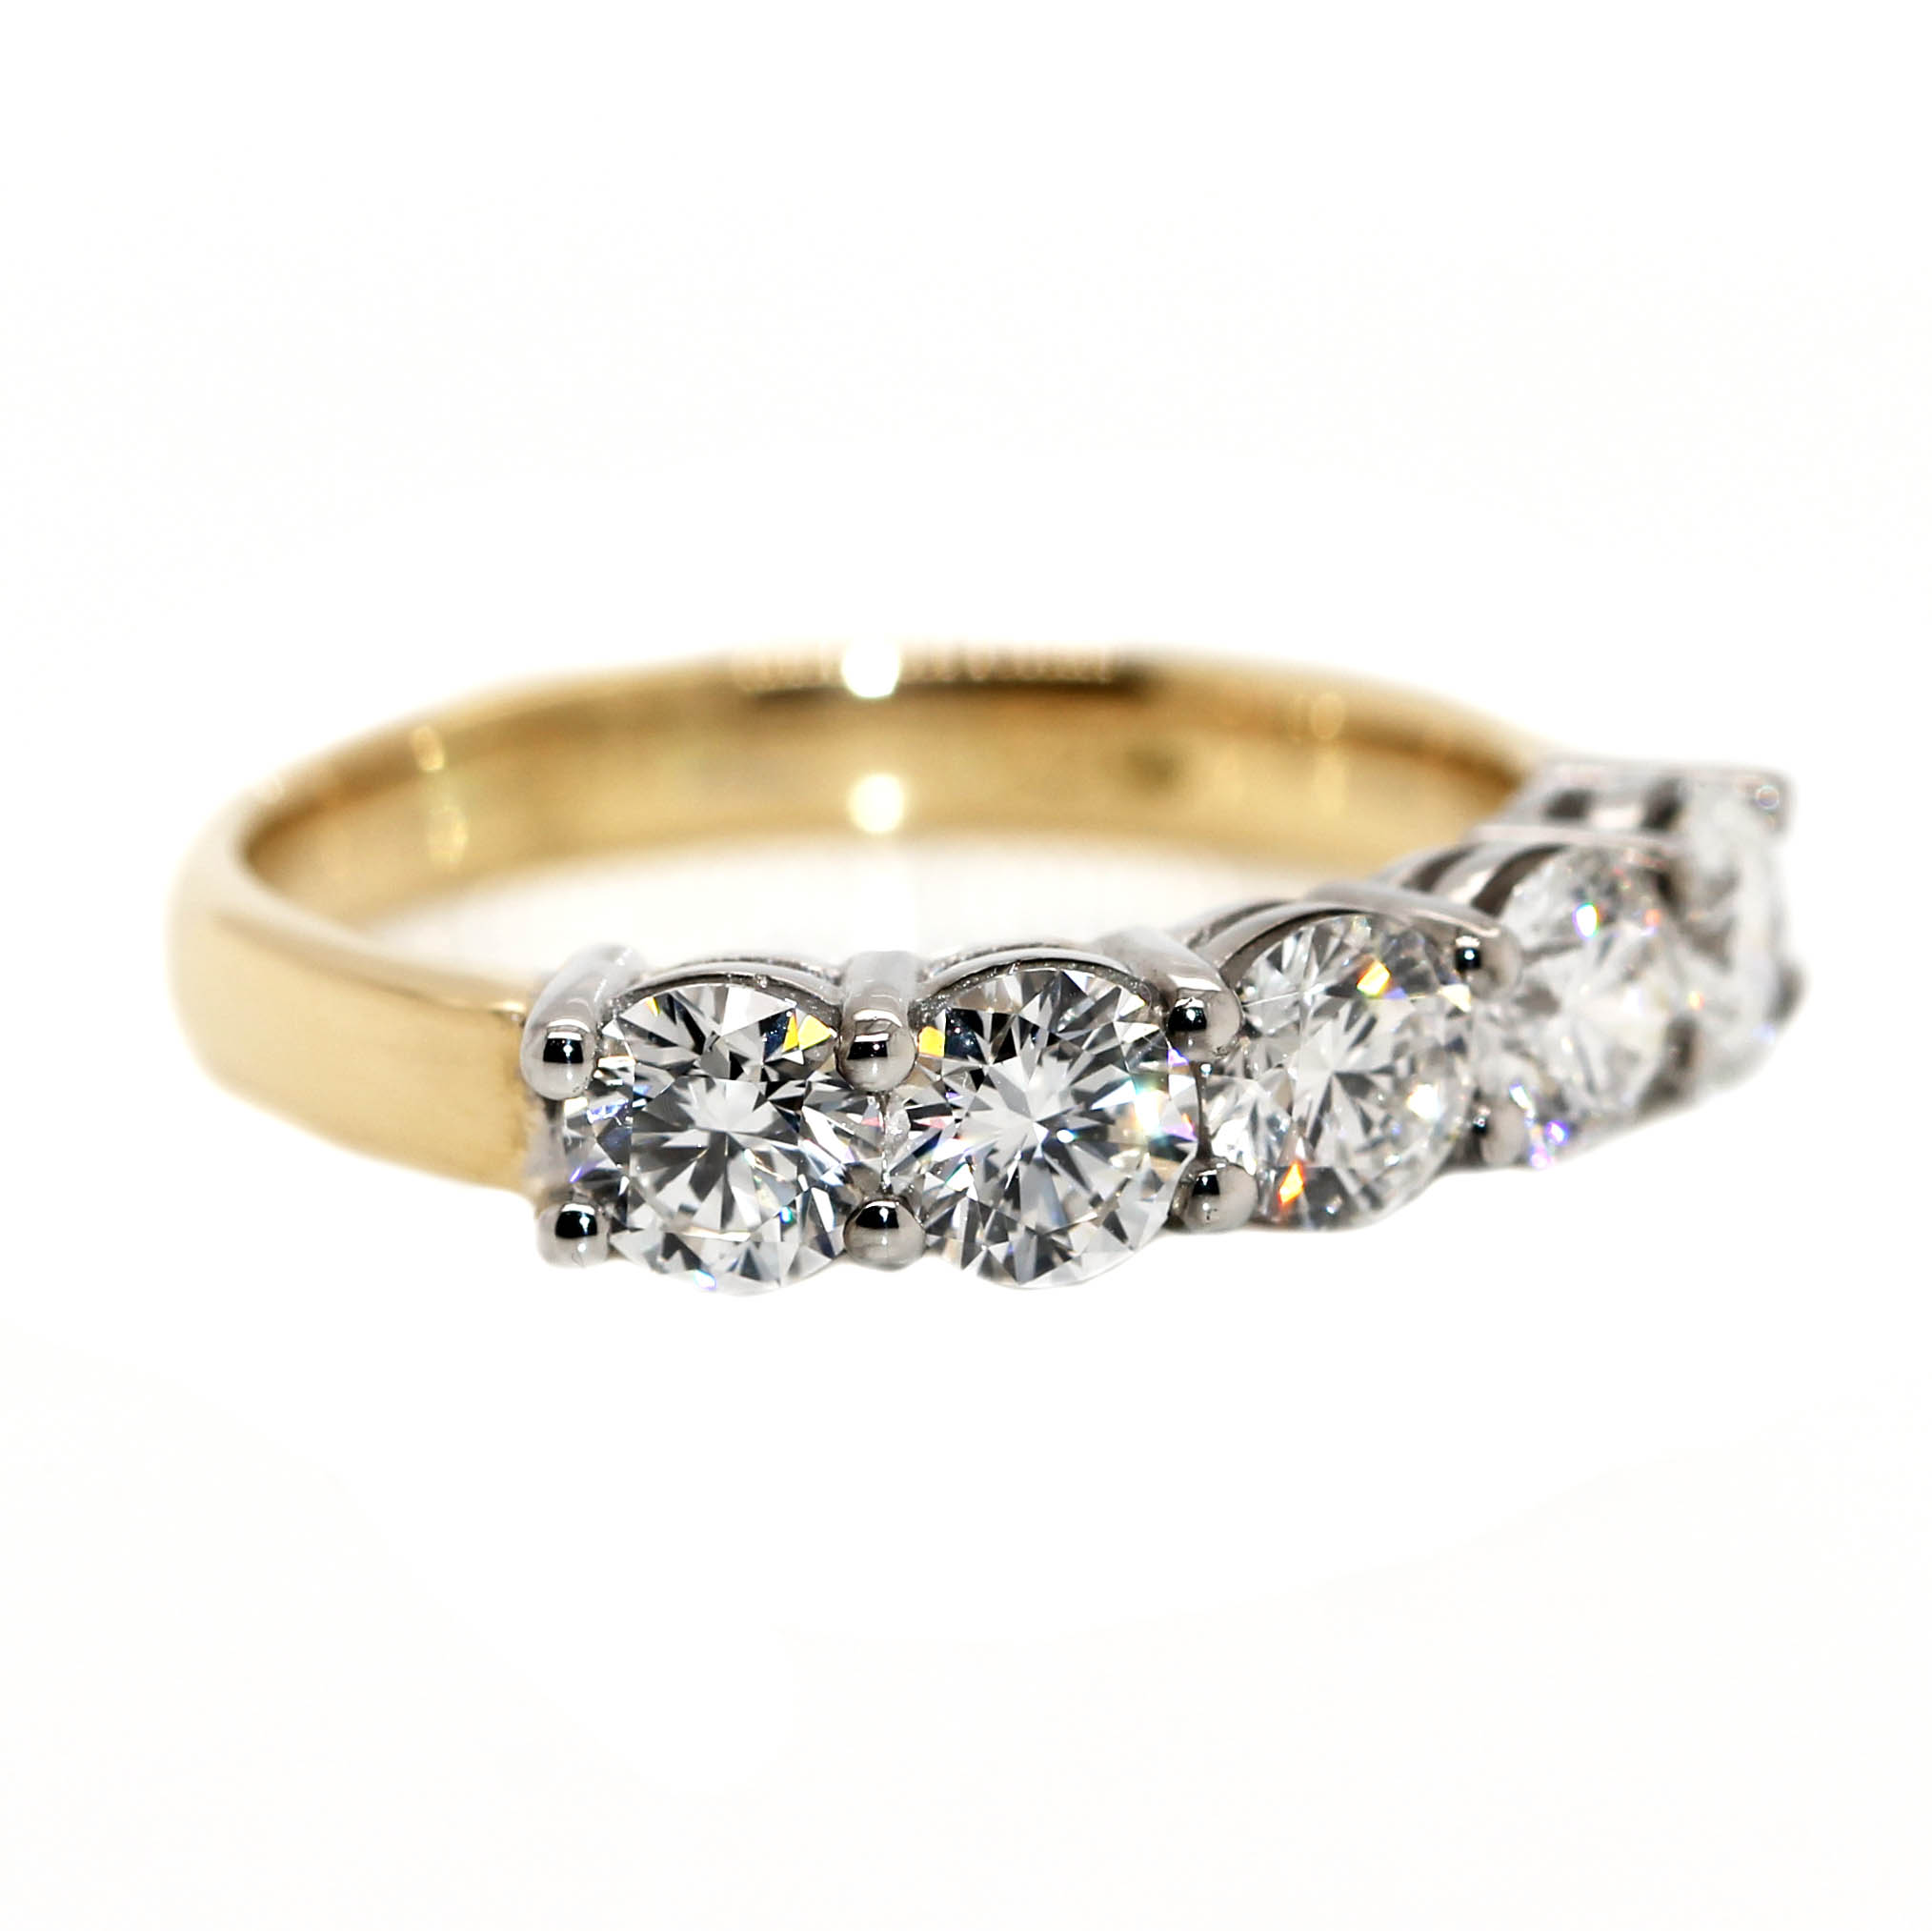 18ct Yellow Gold & Platinum, set with 5 Diamonds equaling 1.51ct of Diamonds.